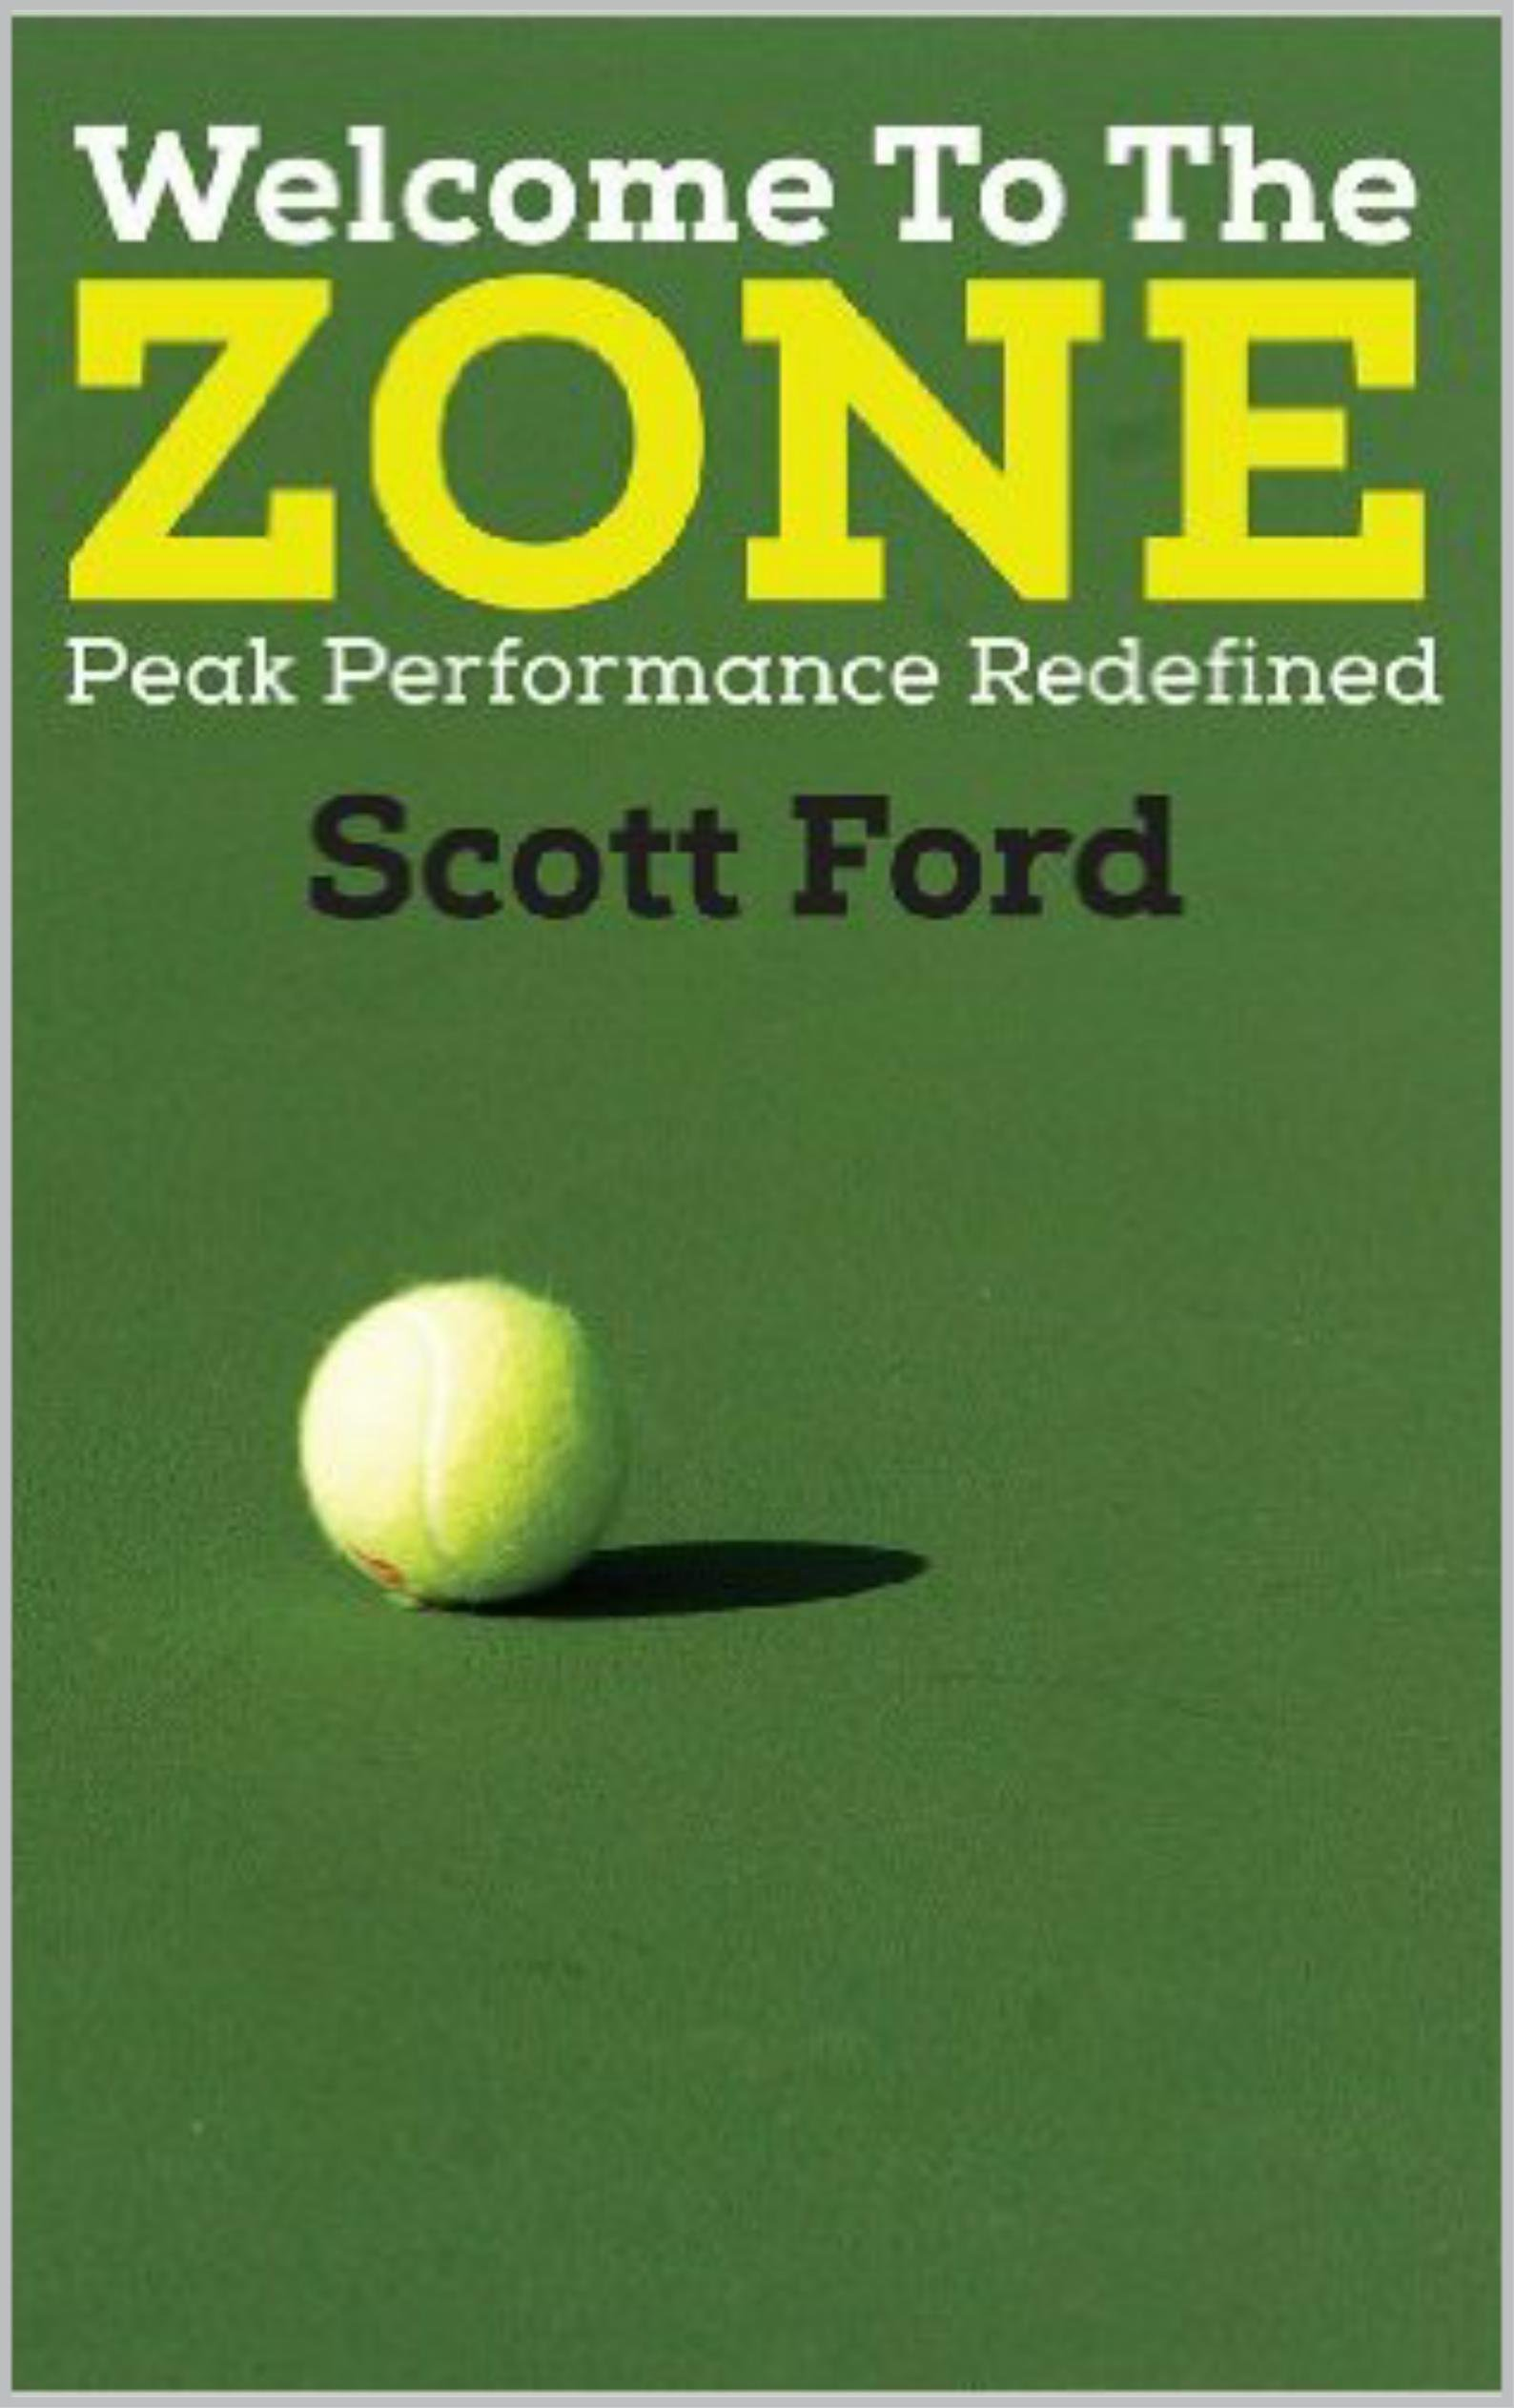 Image OfWelcome To The Zone: Peak Performance Redefined (English Edition)